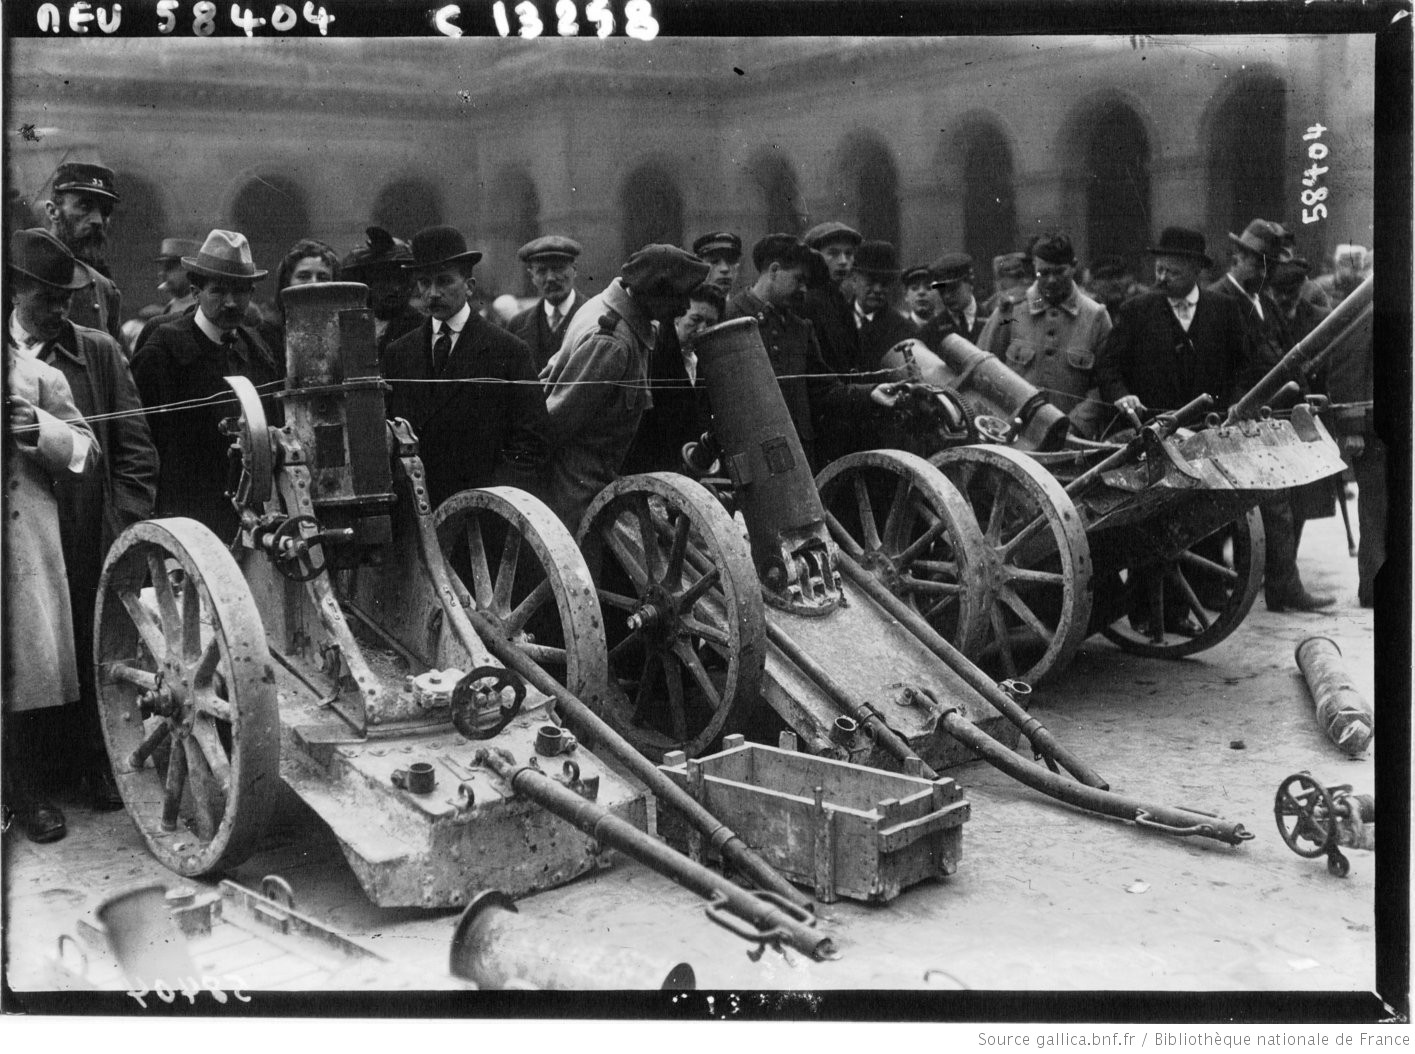 Captured German Trench Mortars (including two Minenwerfers) on display to the French public in Paris in 1915. #WW1 #1GM https://t.co/VhpxzIAj4S